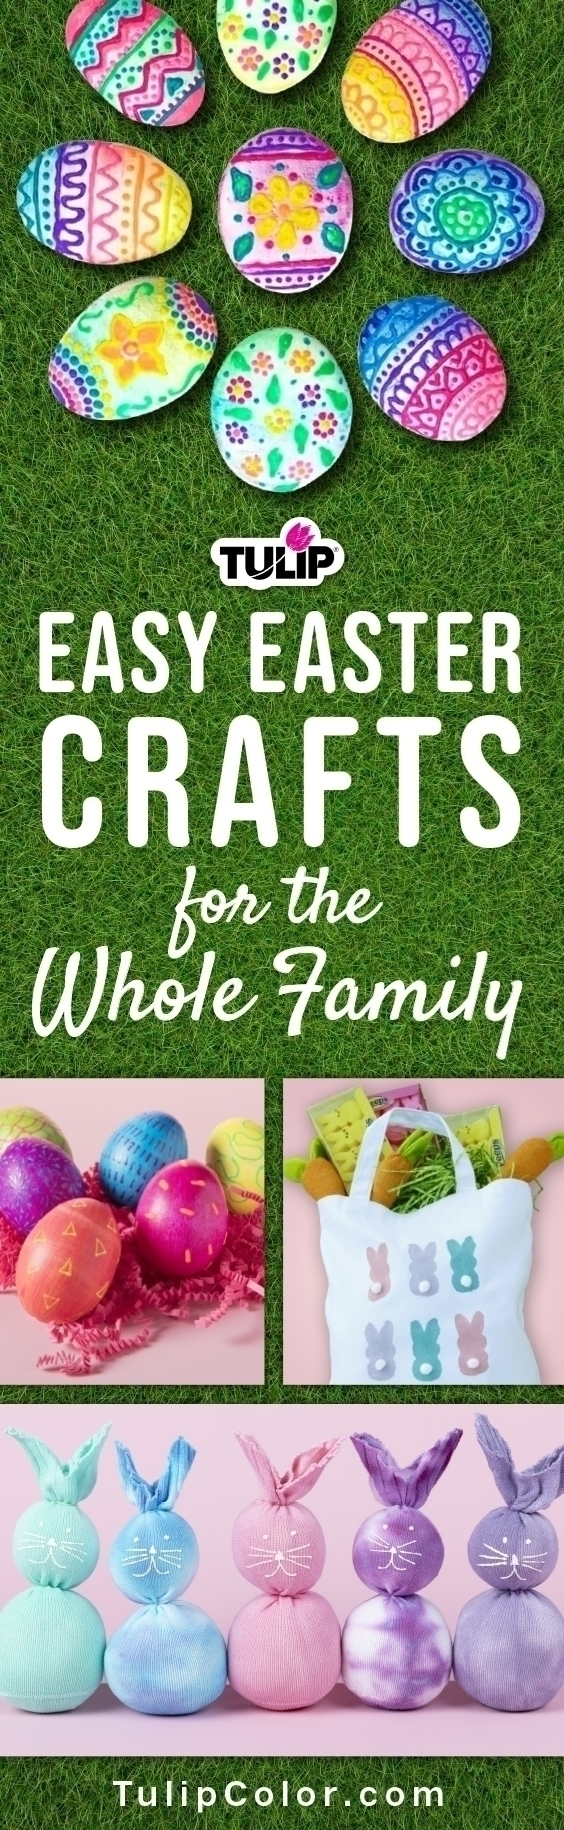 4 Easy Easter Projects for All Ages